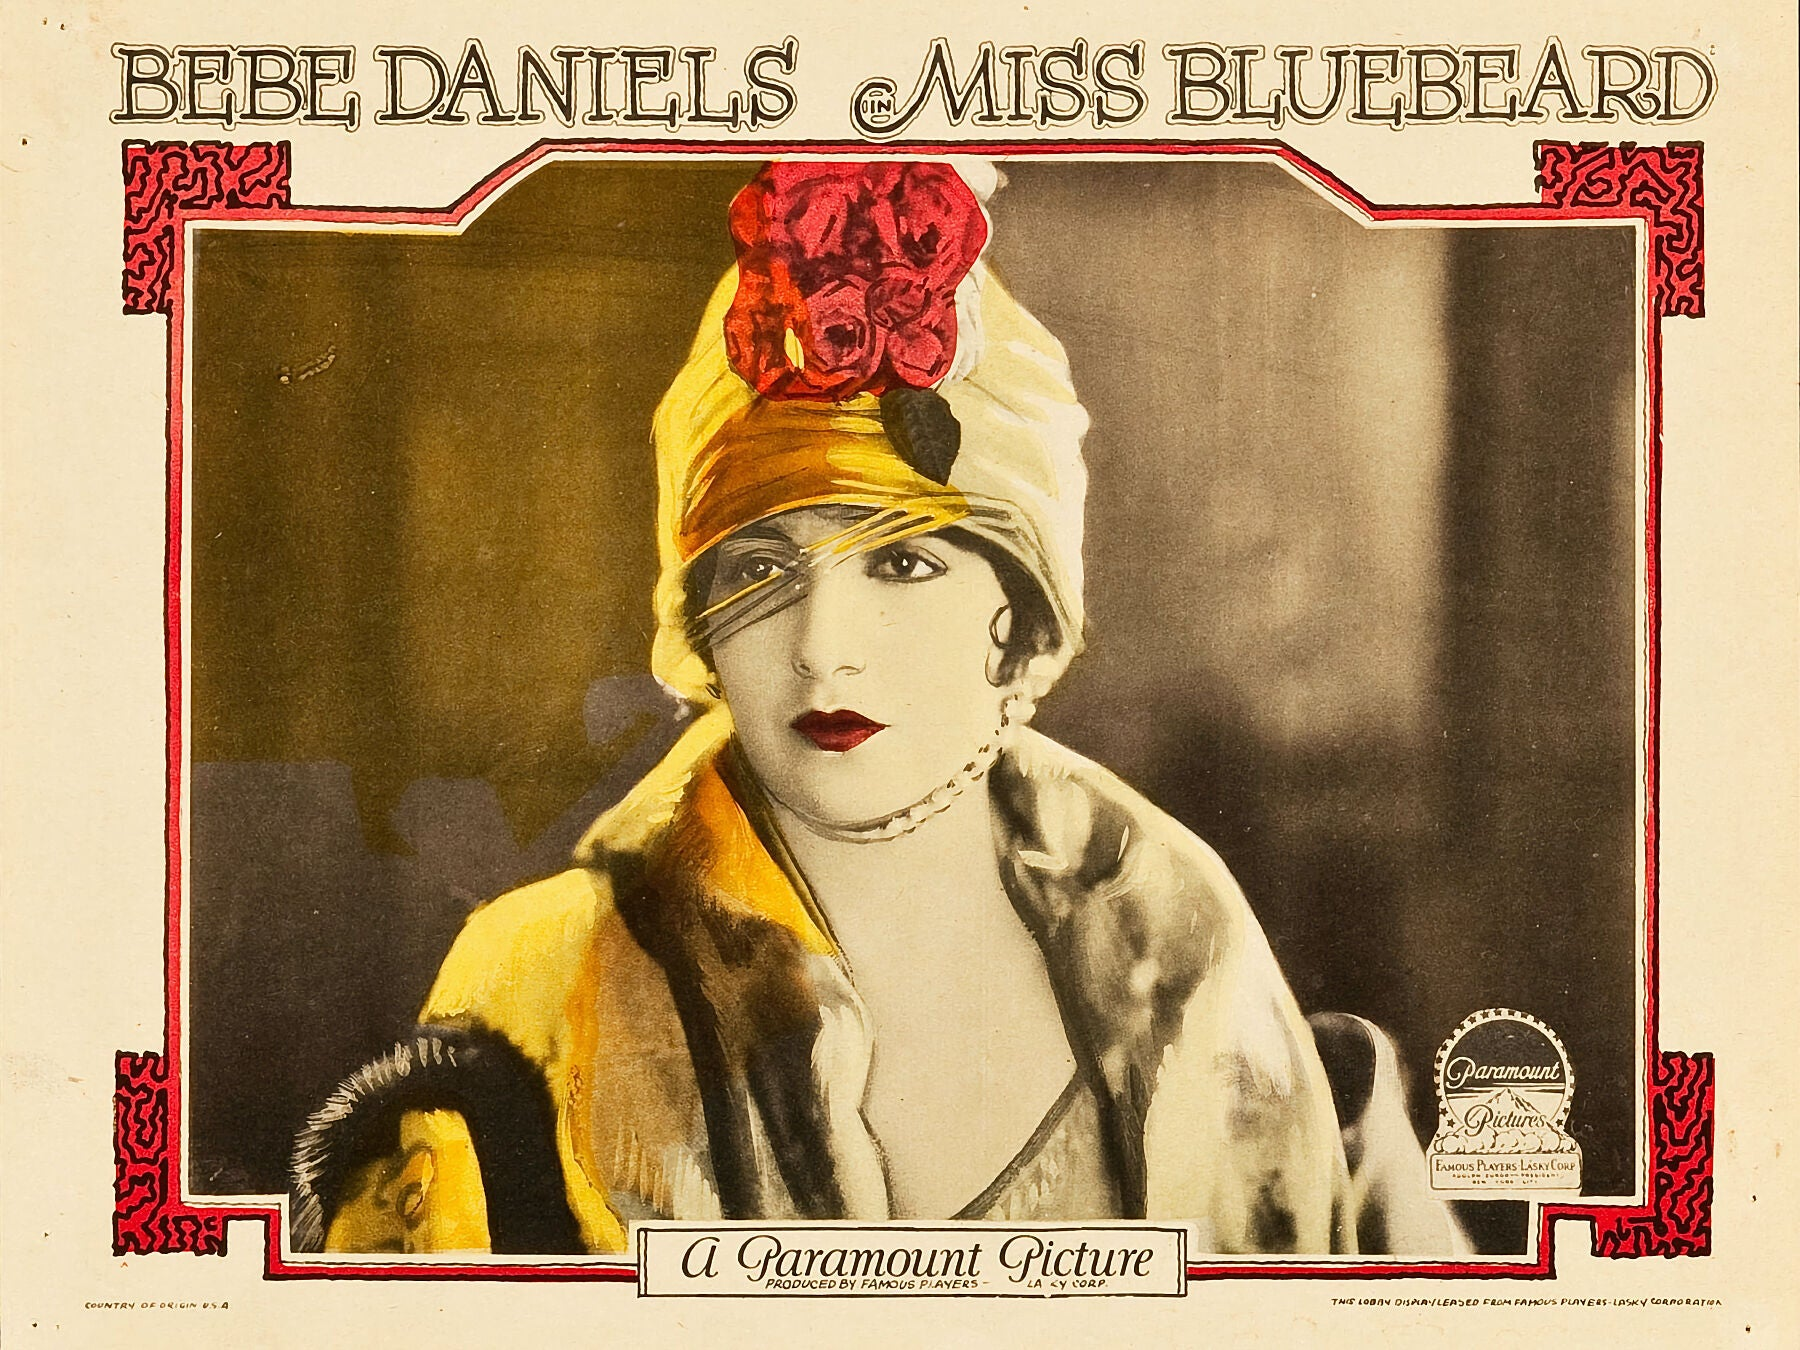 Miss Bluebeard Lobby Card - 1925